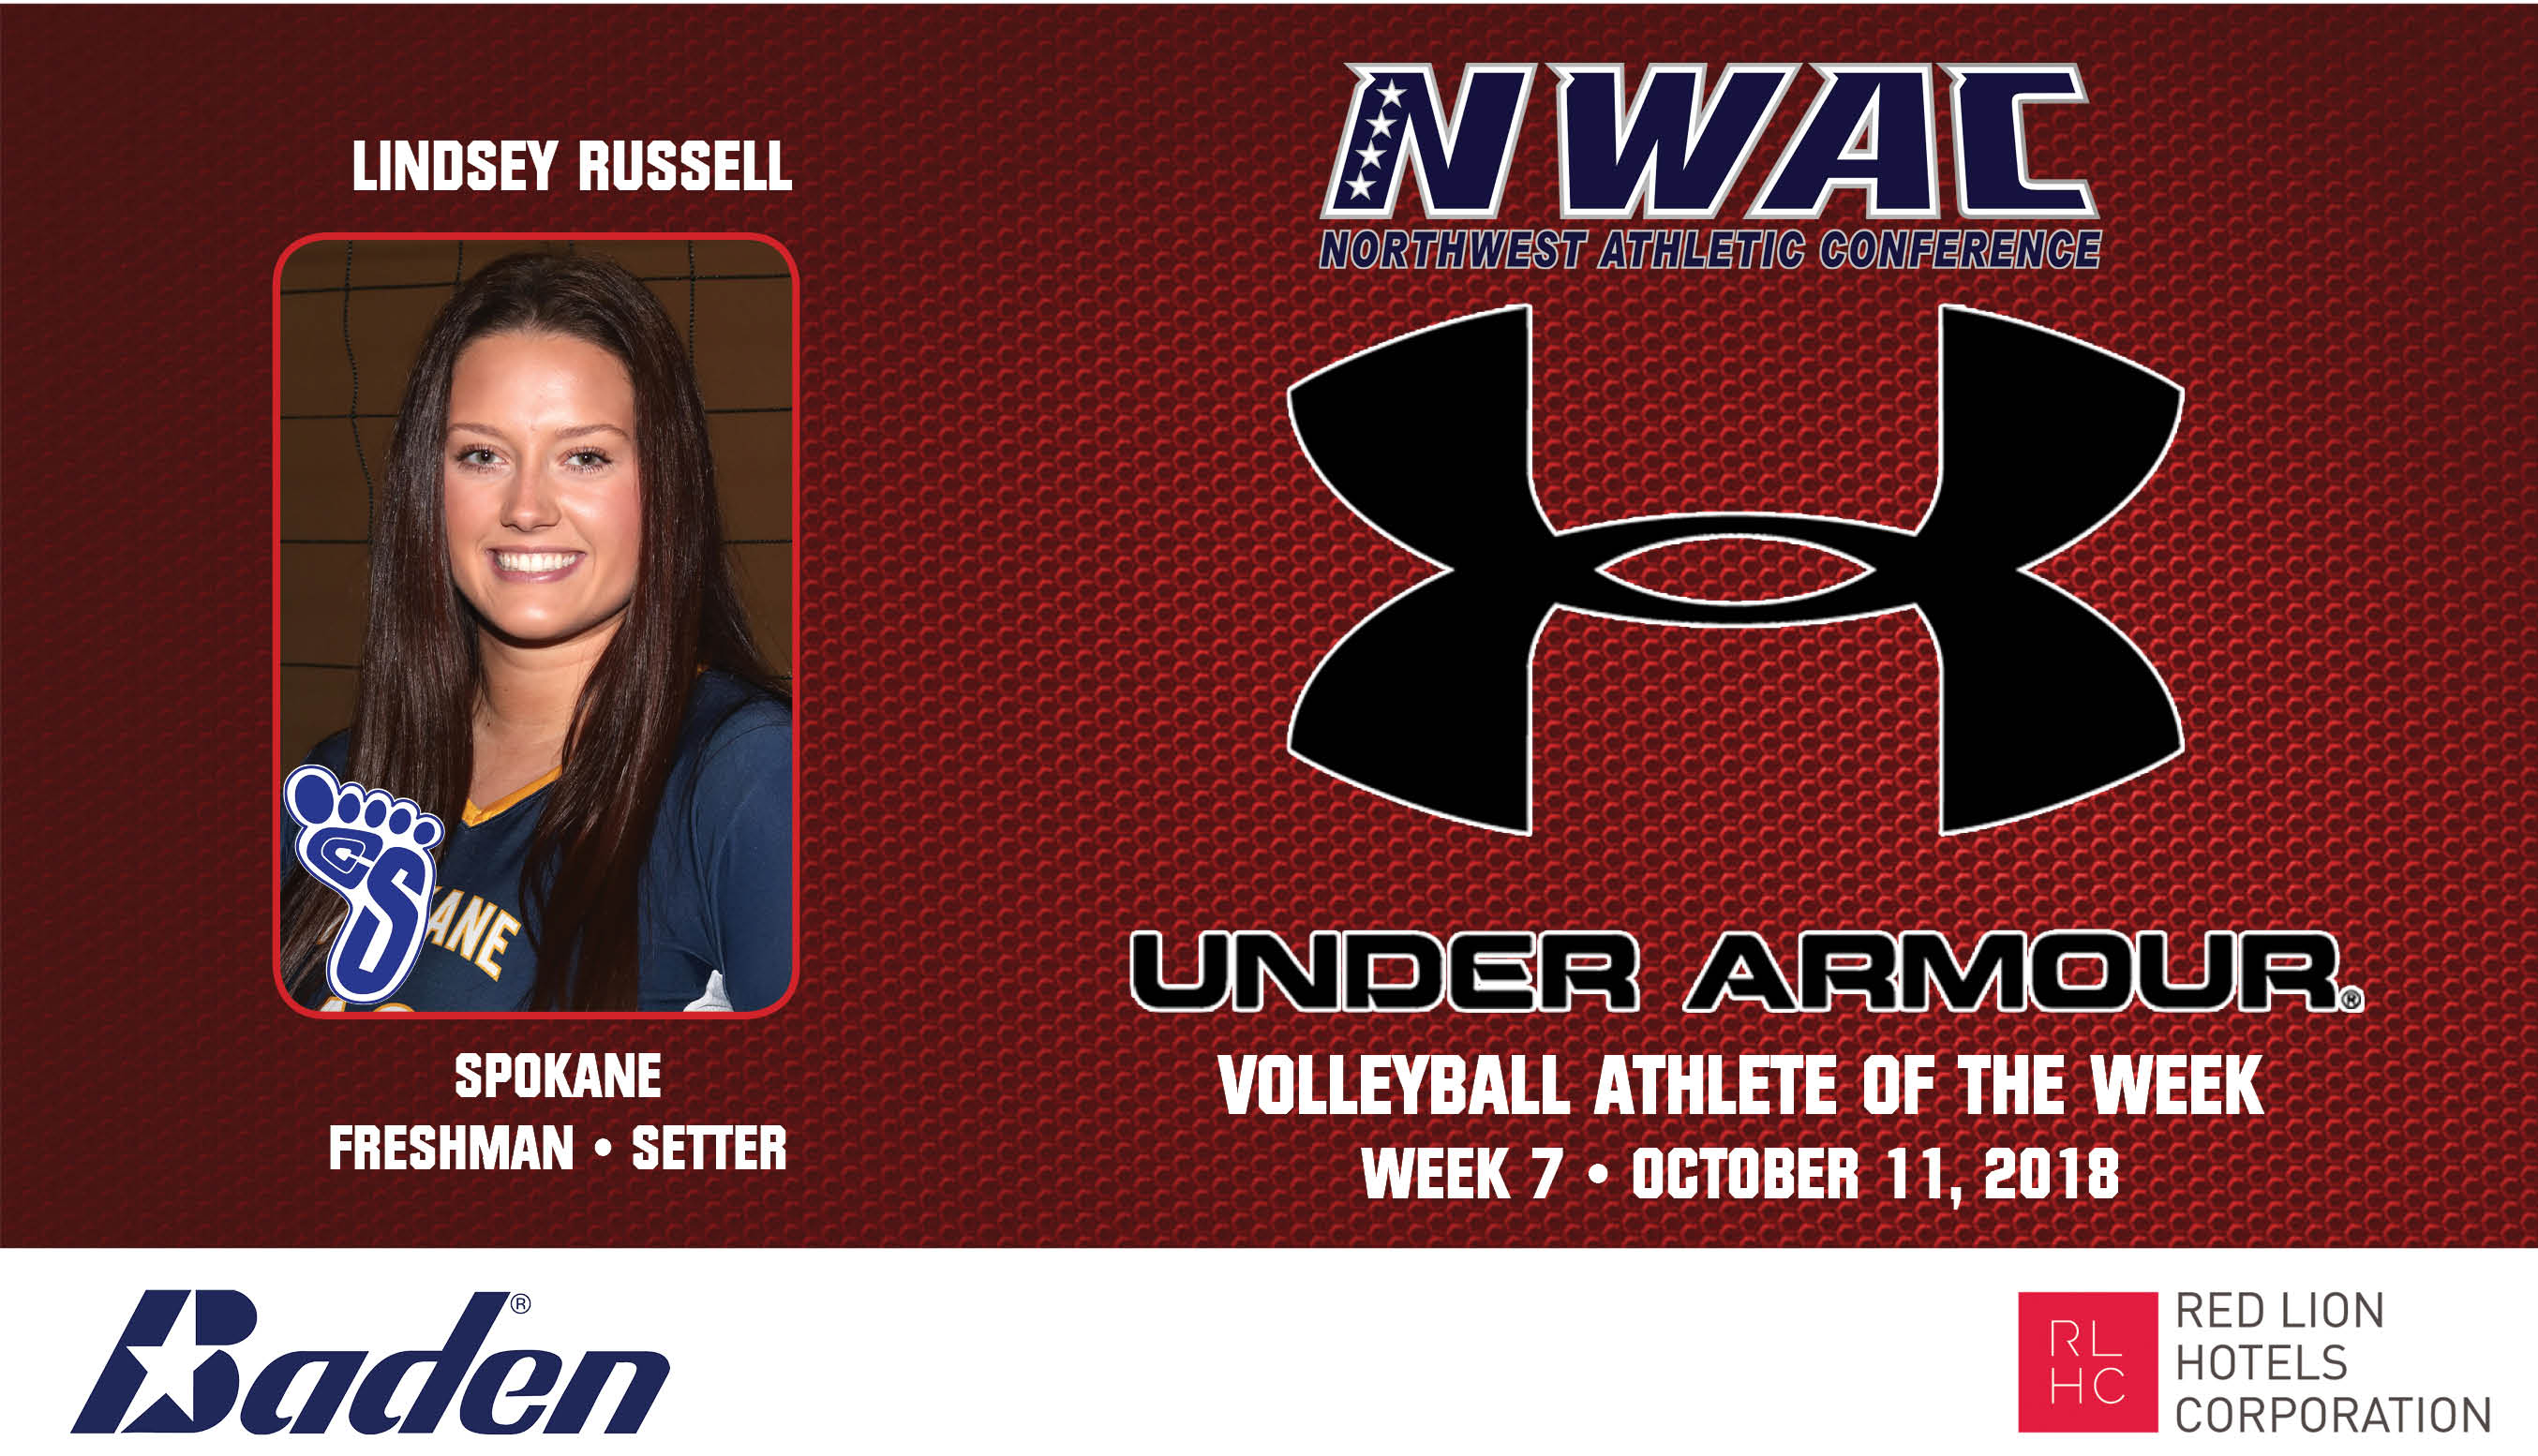 LINDSEY RUSSELL Under Armour Photo Banner